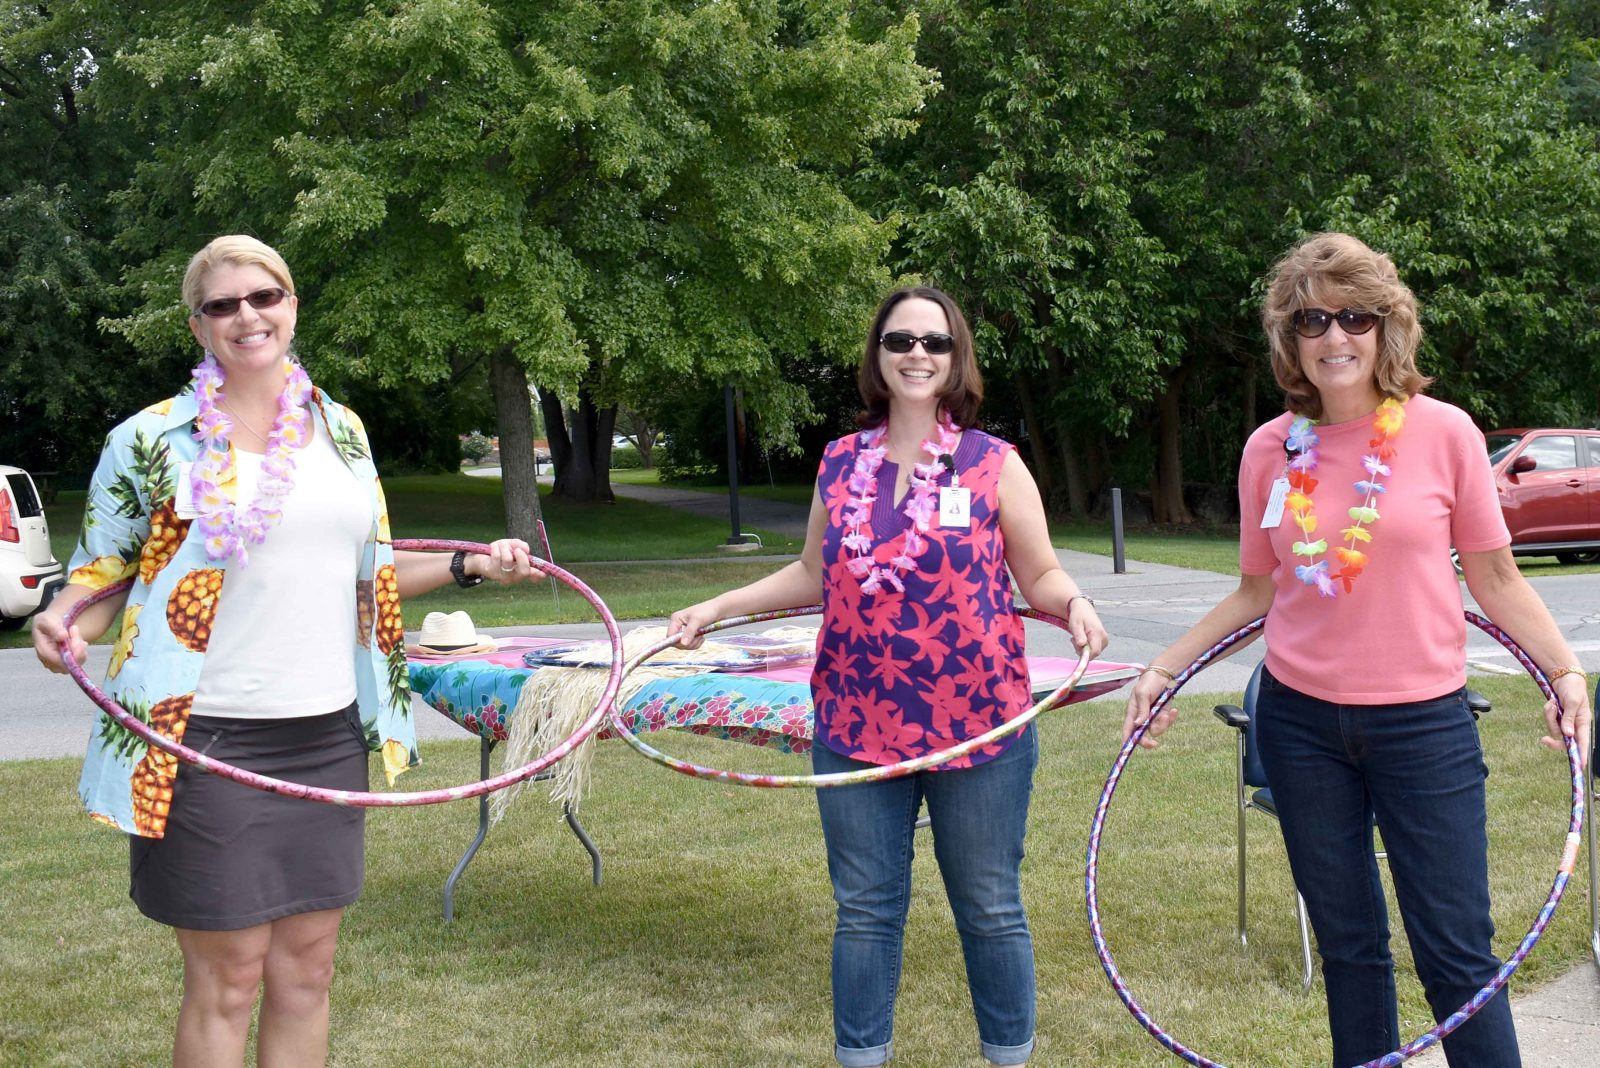 Three employees trying hula hoops at Wesley's employee picnic.